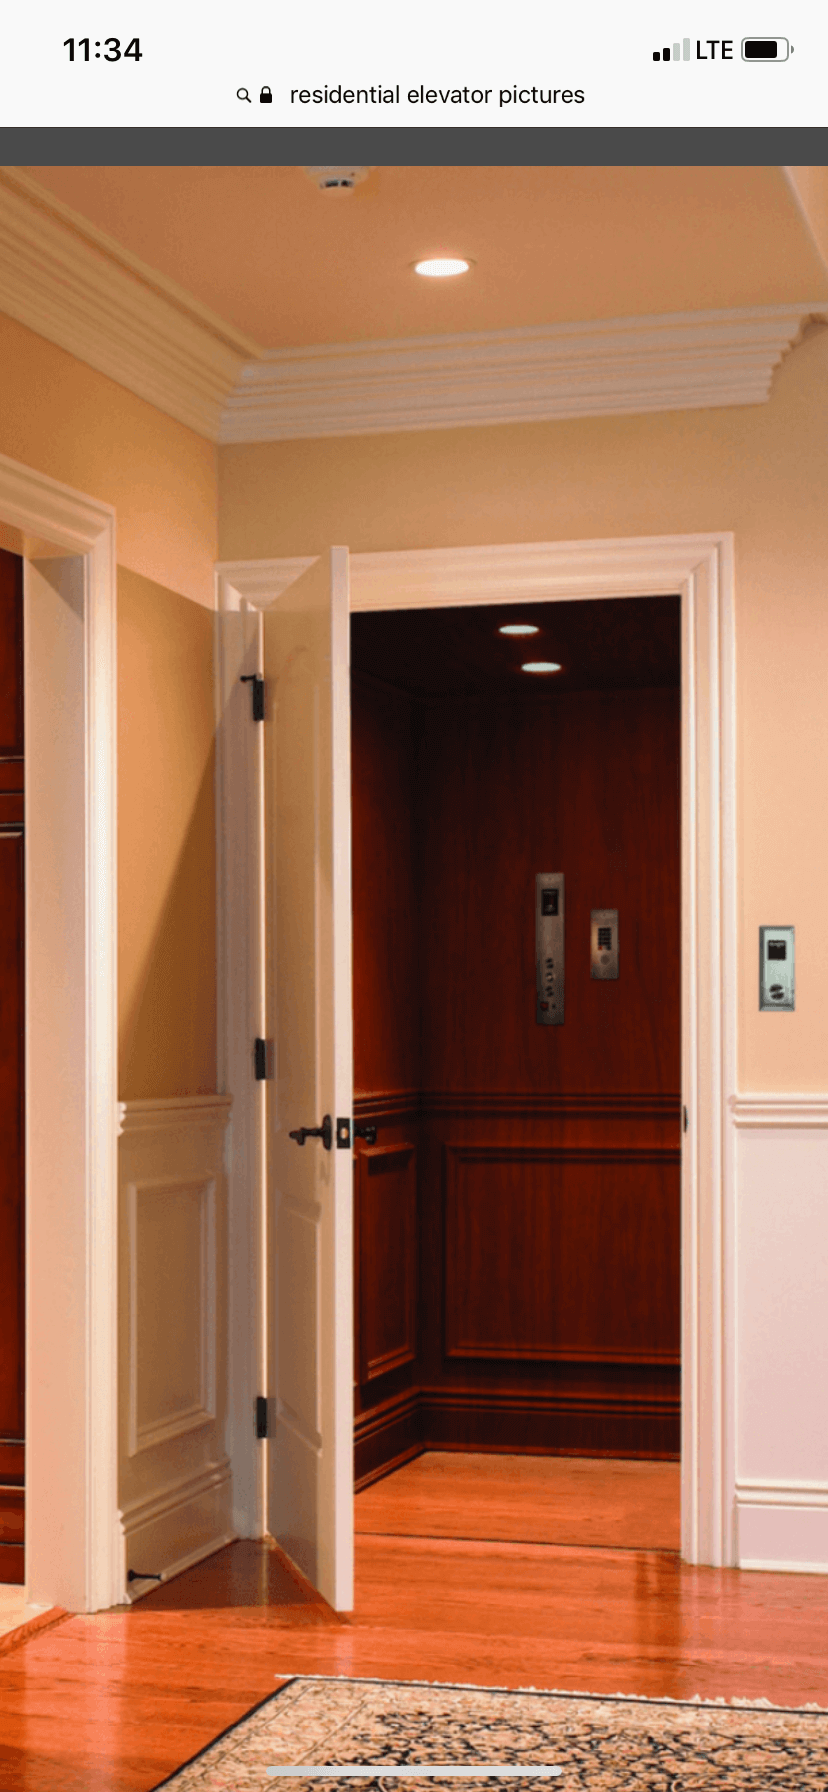 Emergency Preparedness and Your Home Elevator